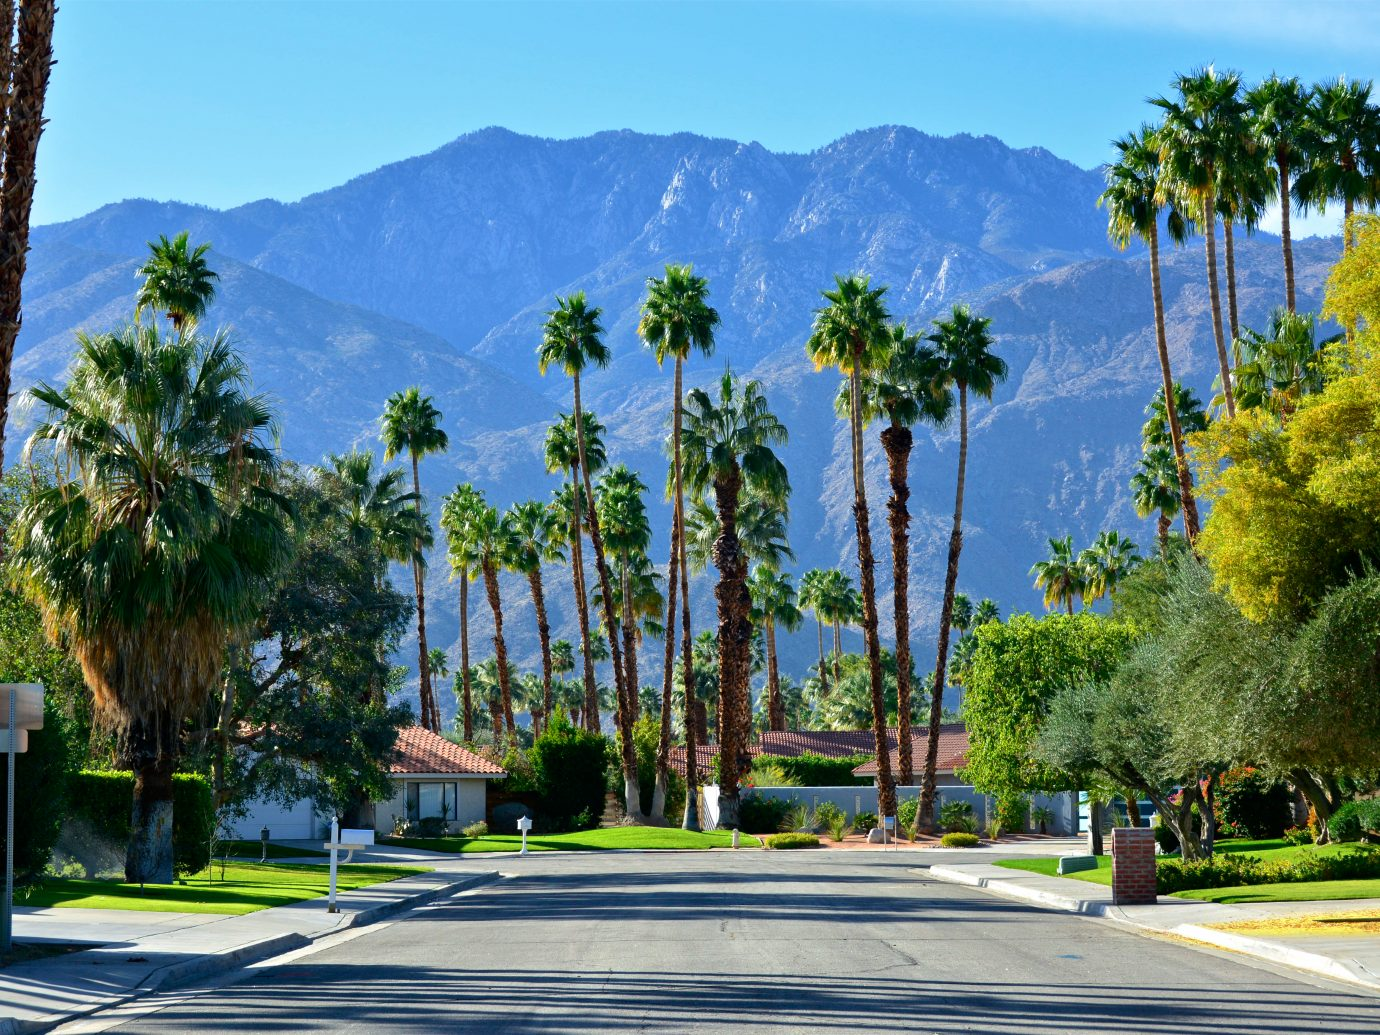 A street scene in Palm Springs